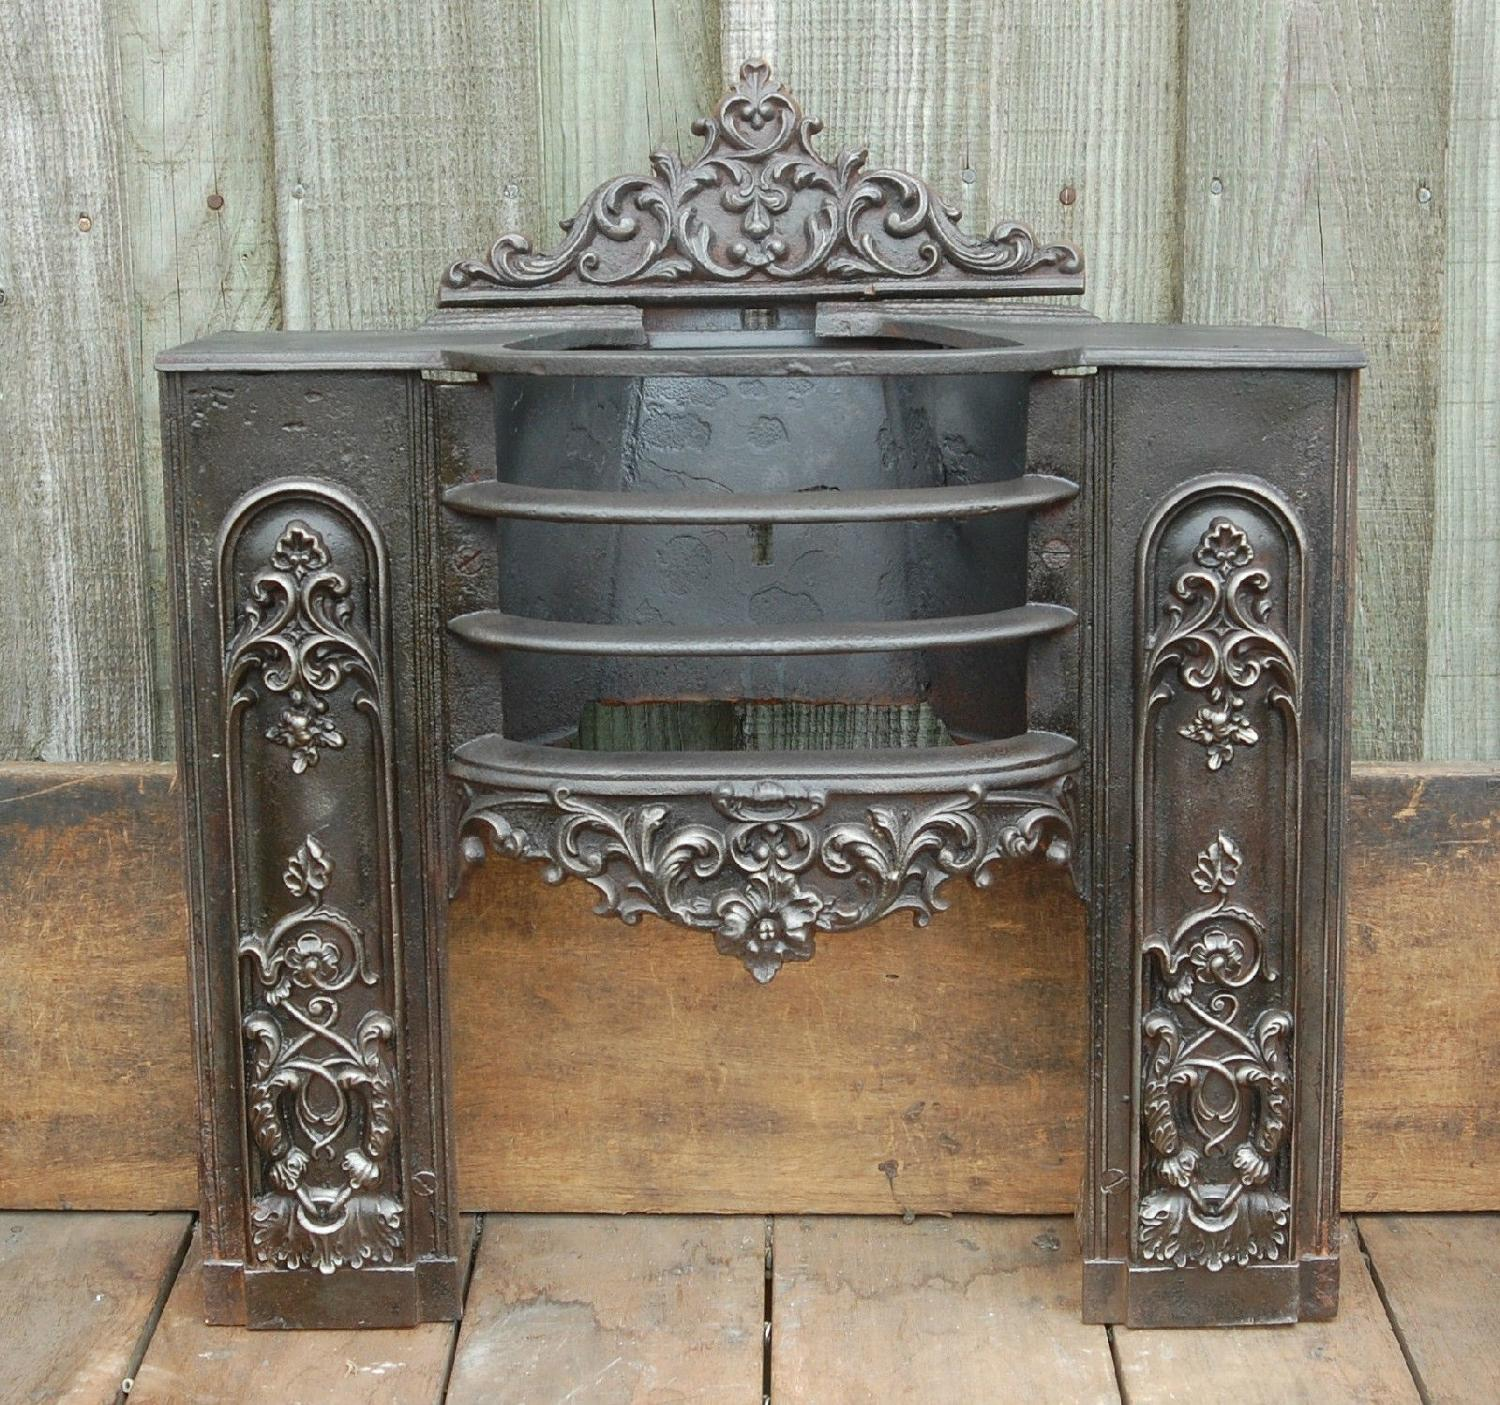 FB0001 A Small Decorative Original Georgian Hobgrate Fire